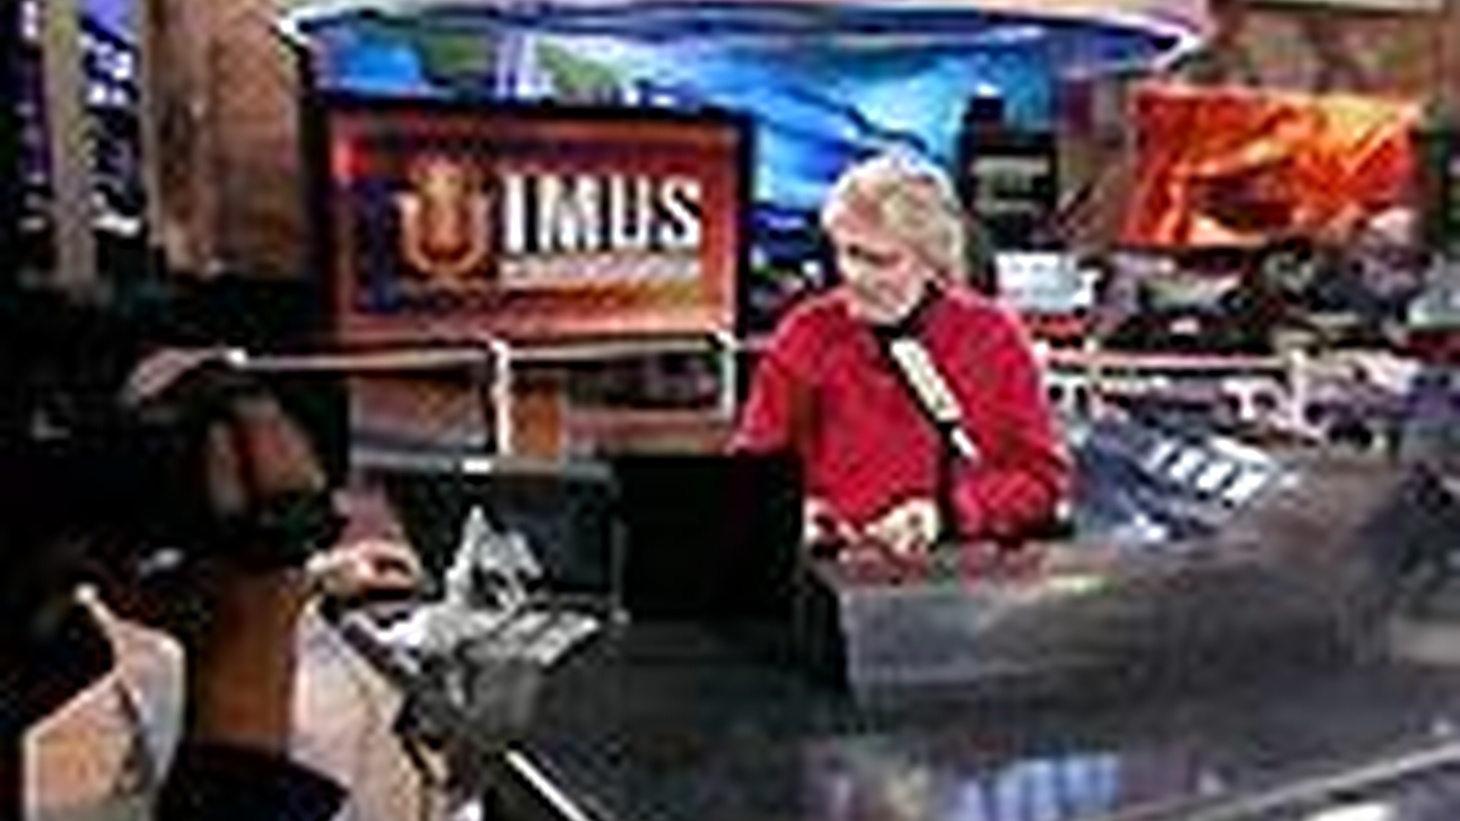 Radio shock-jock Don Imus had a record of brutal, vulgar attacks on ethnic groups and women, but celebrity politicians and news figures were regulars on his program. Why was the slur on the Rutgers basketball team the last straw? What does the episode illustrate about America's popular culture? Also, a promotion for his girlfriend spells trouble for World Bank President Paul Wolfowitz and, on Reporter's Notebook, Kurt Vonnegut, the Free Speech Movement, and today's bitter disputes about language.